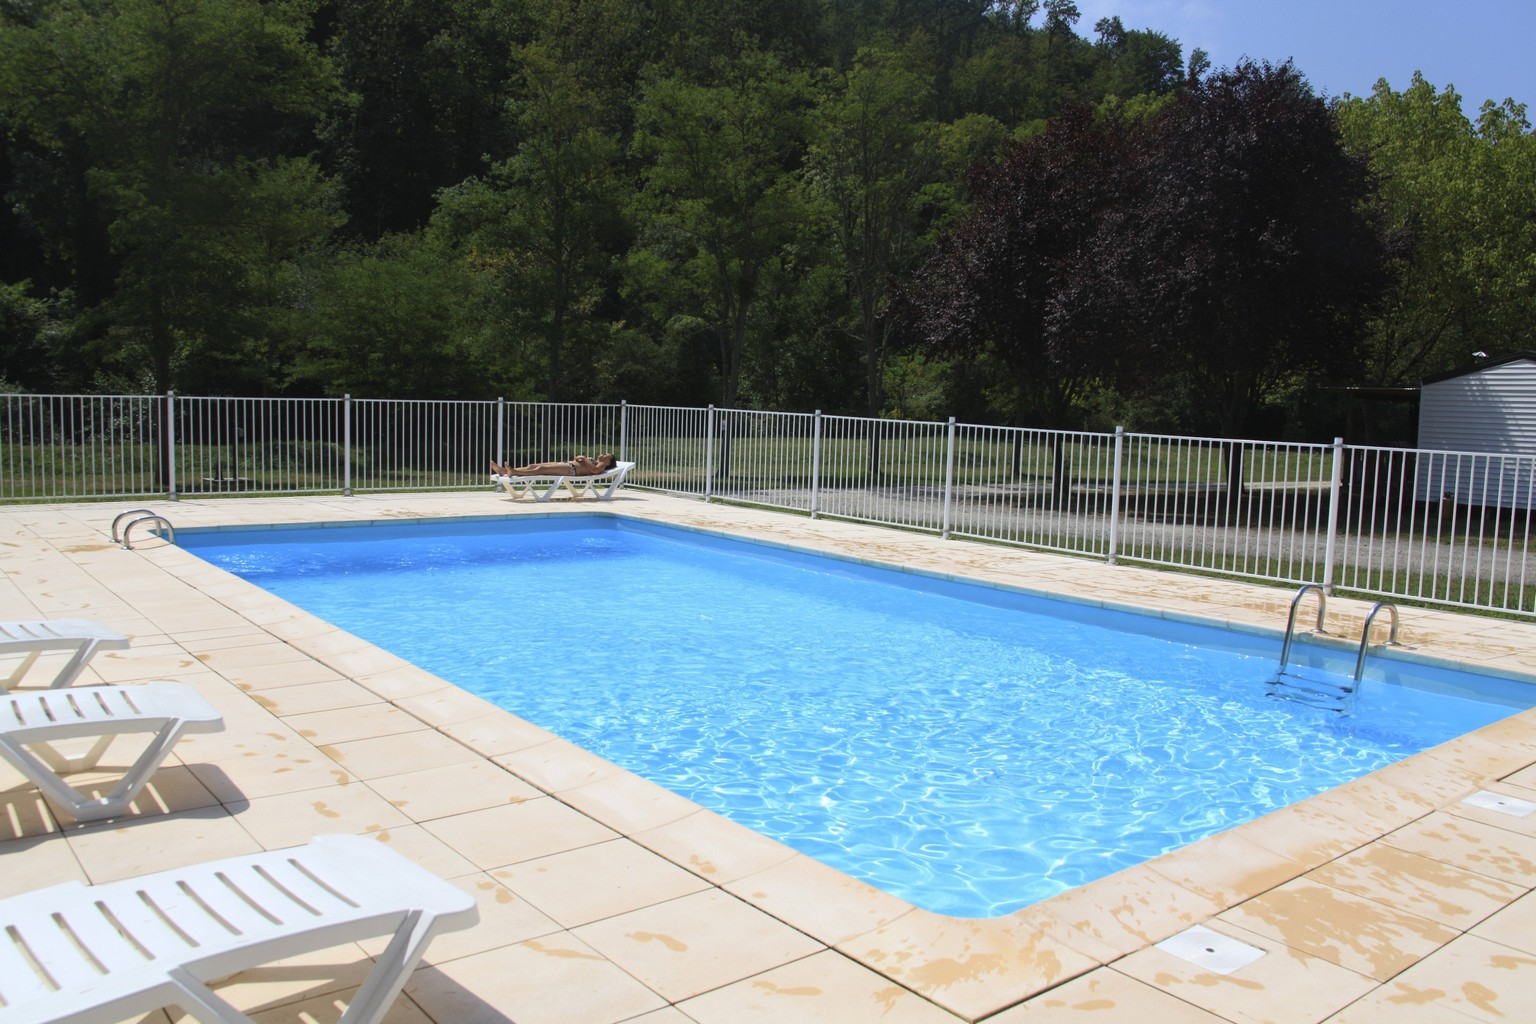 Barri res de protection de piscine faire le bon choix for Piscine plastique